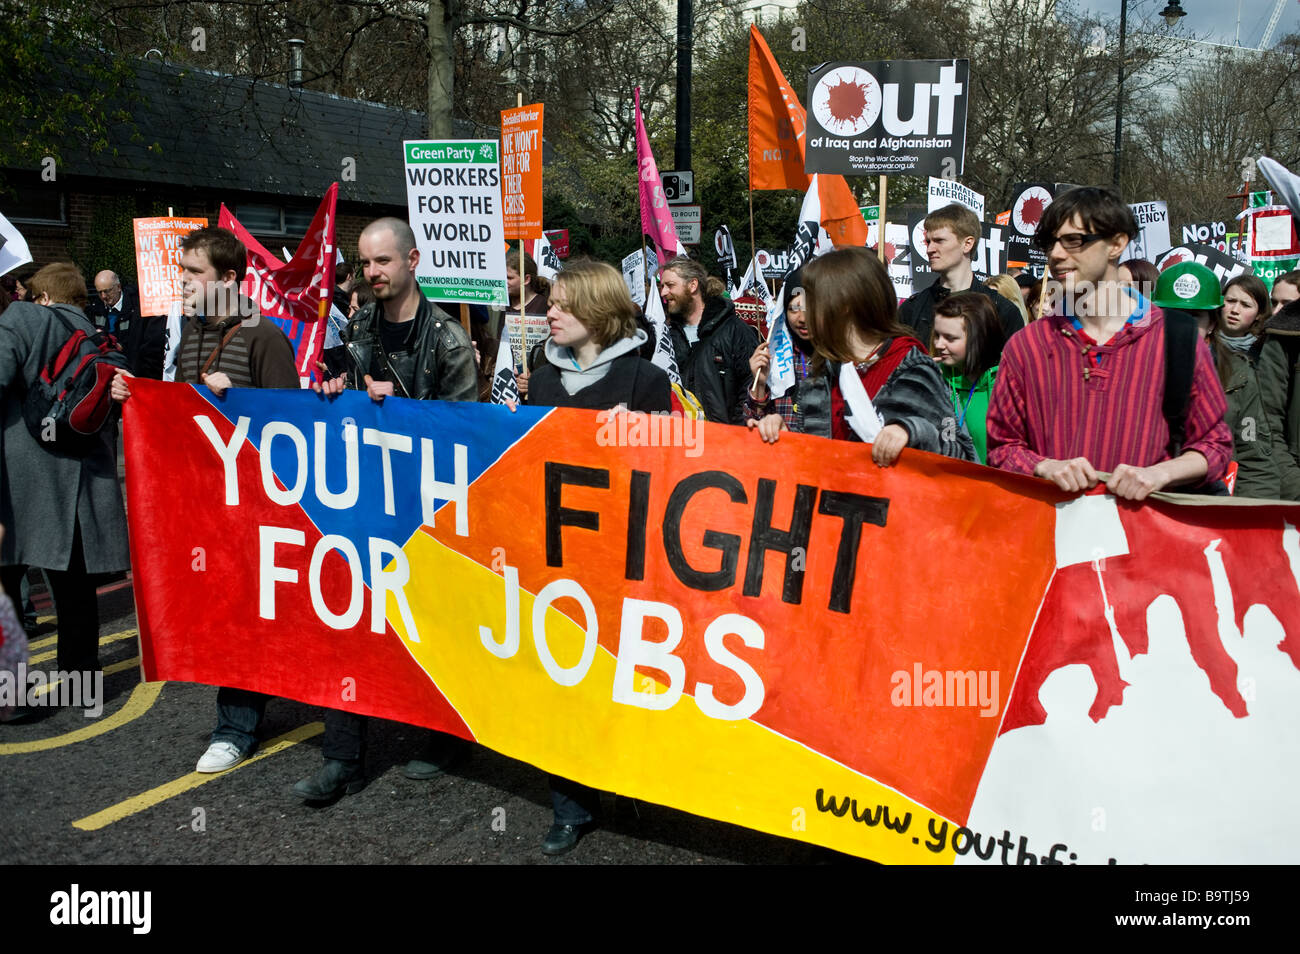 Young people protesting against youth unemployment. - Stock Image